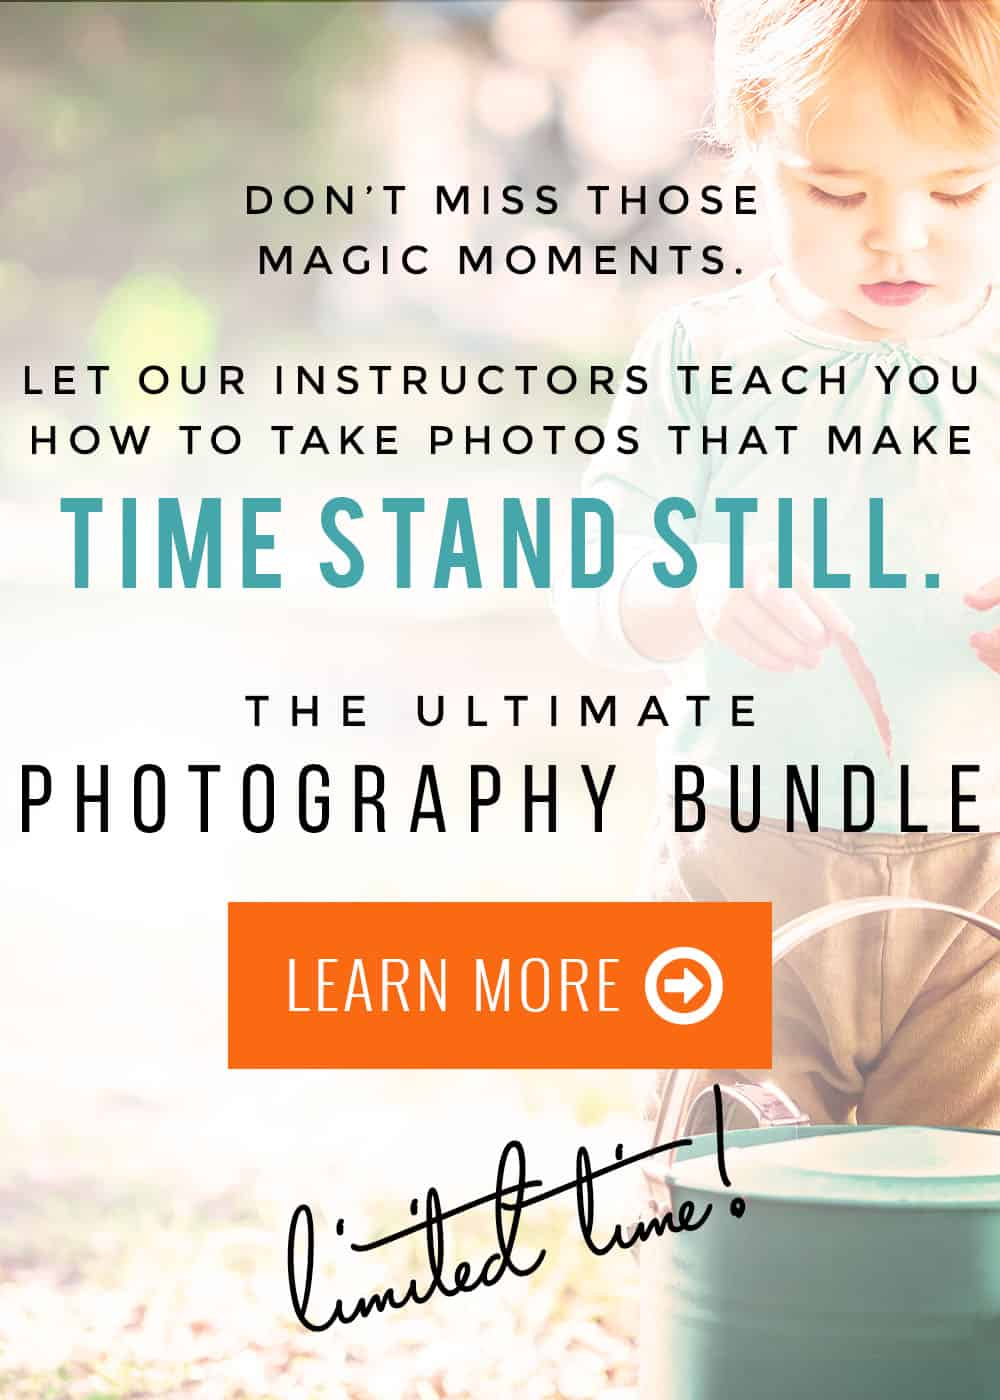 Let Time Stand Still - Photography Bundle